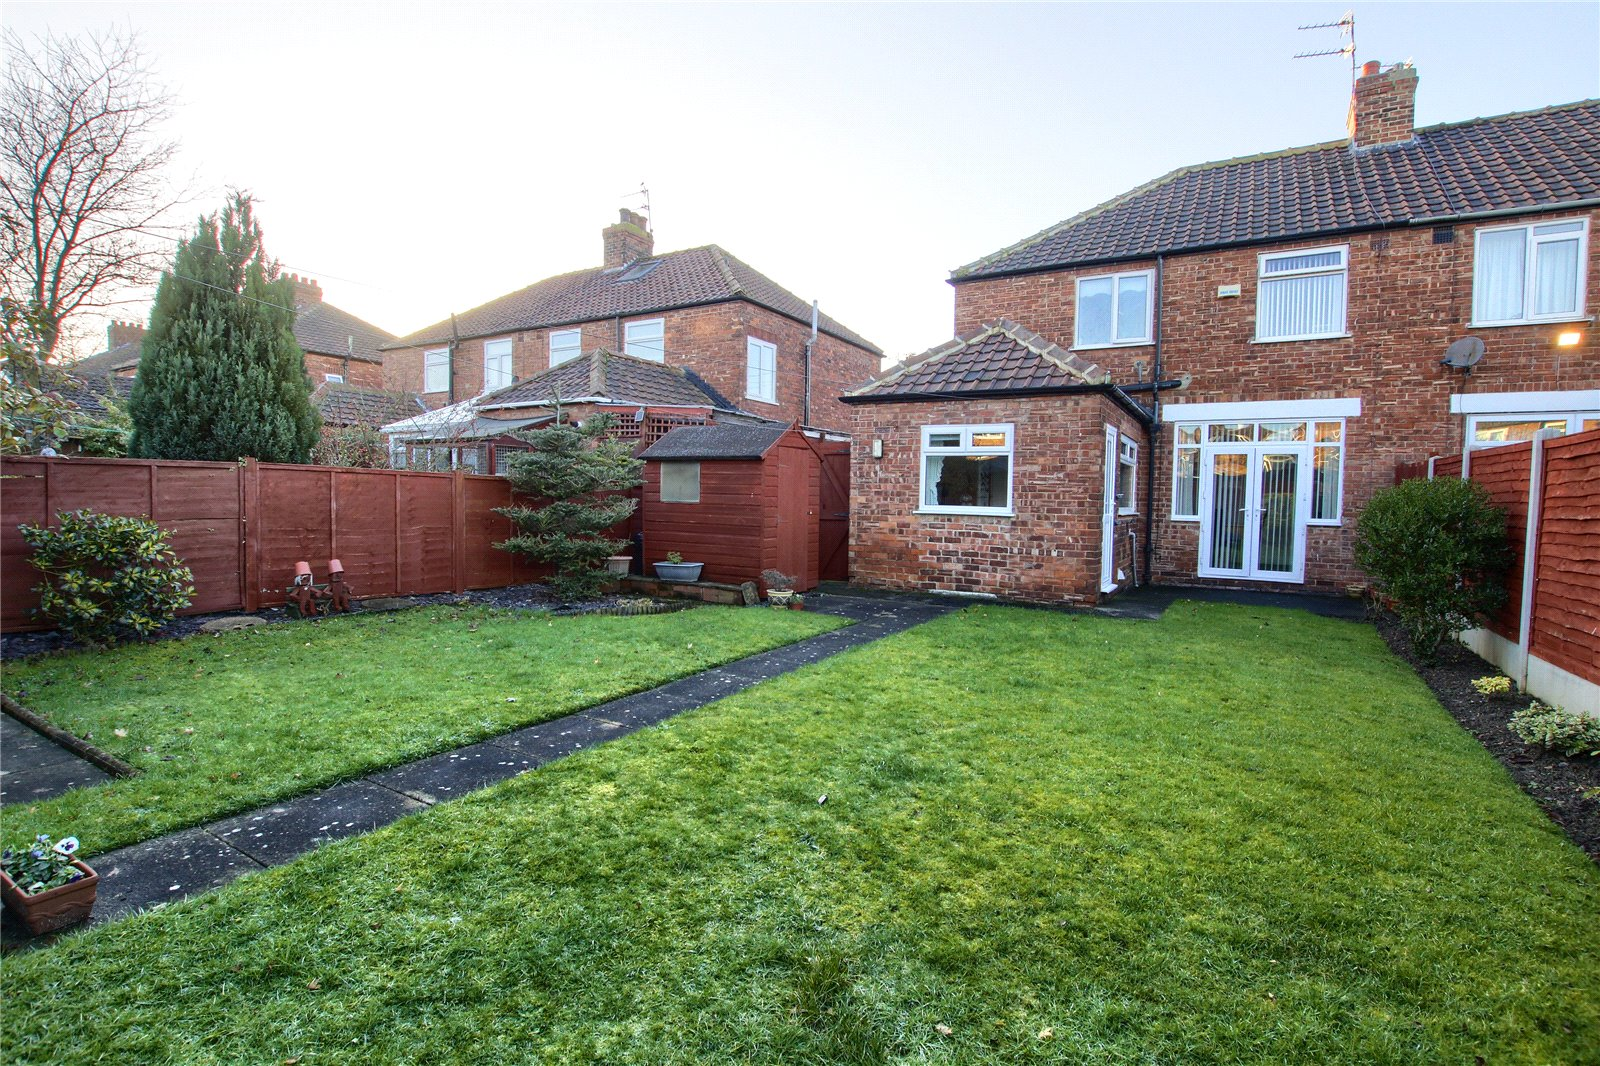 3 bed house for sale in Benton Road, Tollesby  - Property Image 18